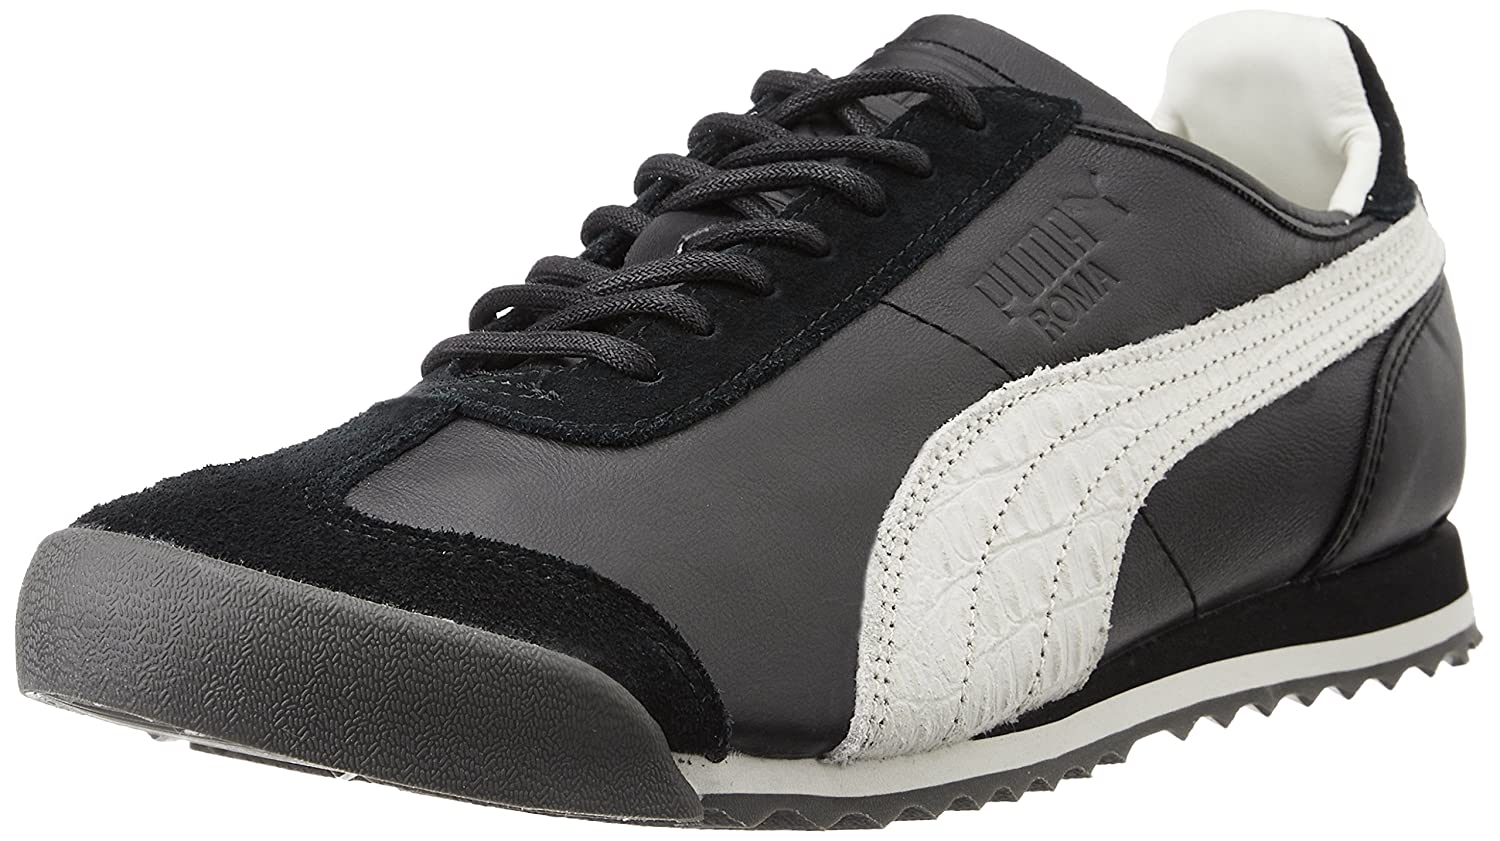 Puma Men s Roma Og Citi Series Leather Sneakers  Buy Online at Low Prices  in India - Amazon.in c0b84e658